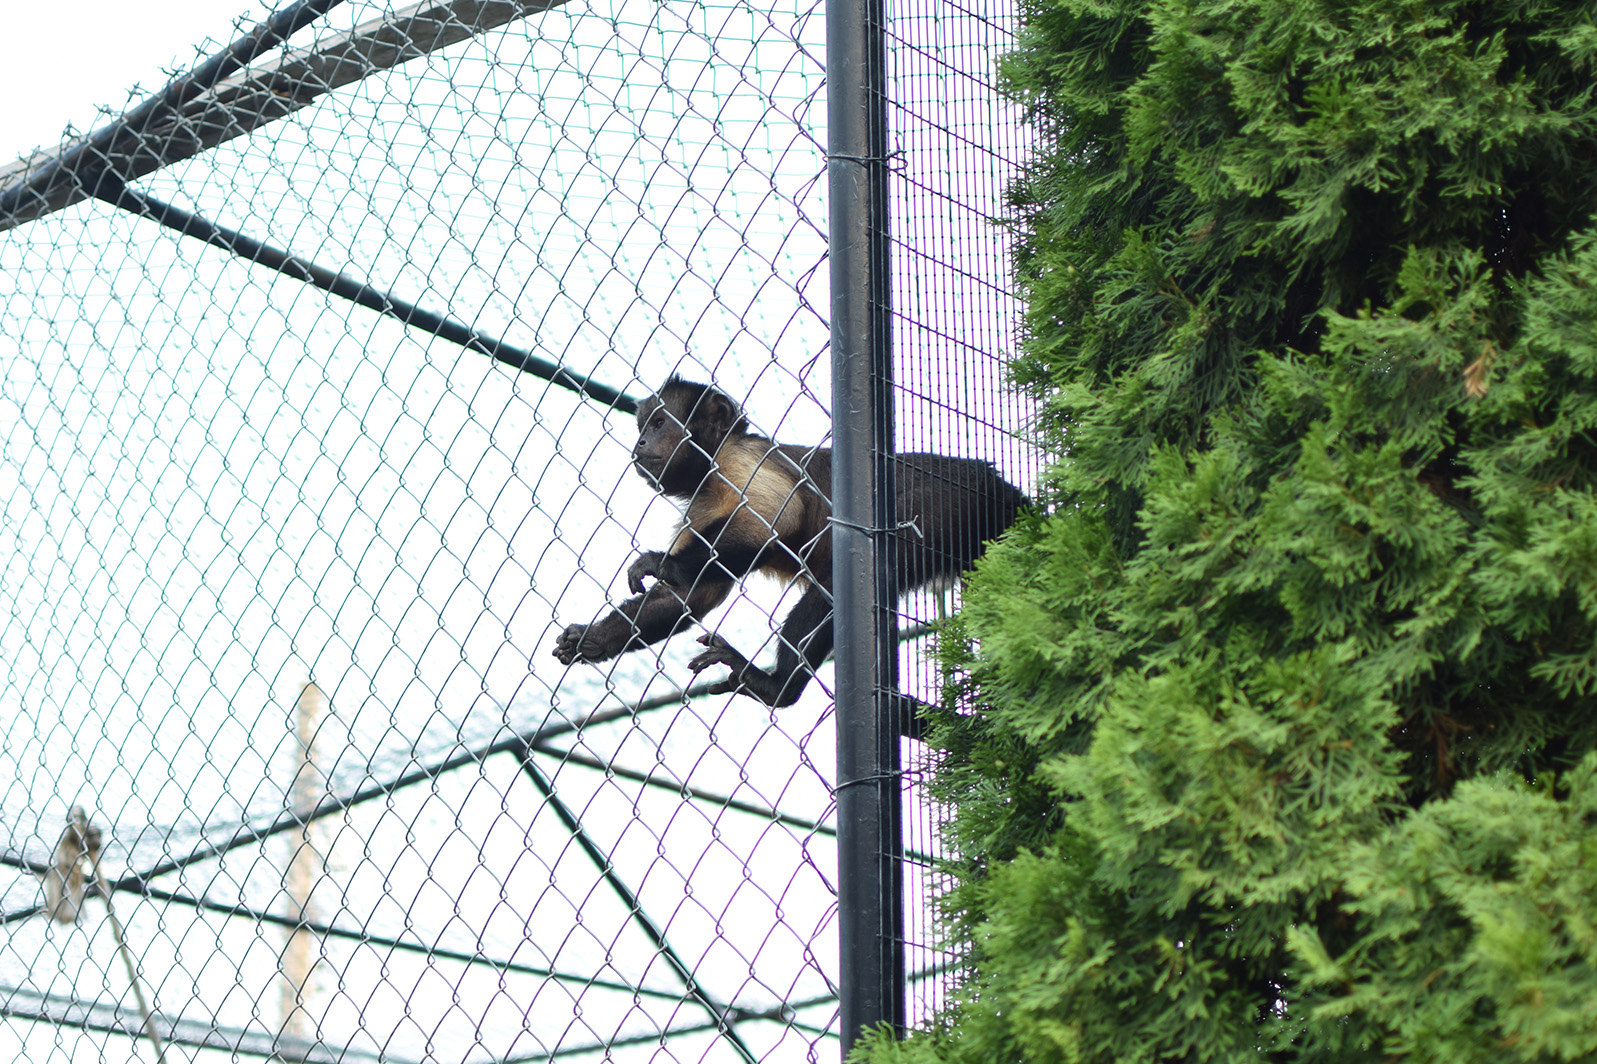 Willow Park Zootah Monkey